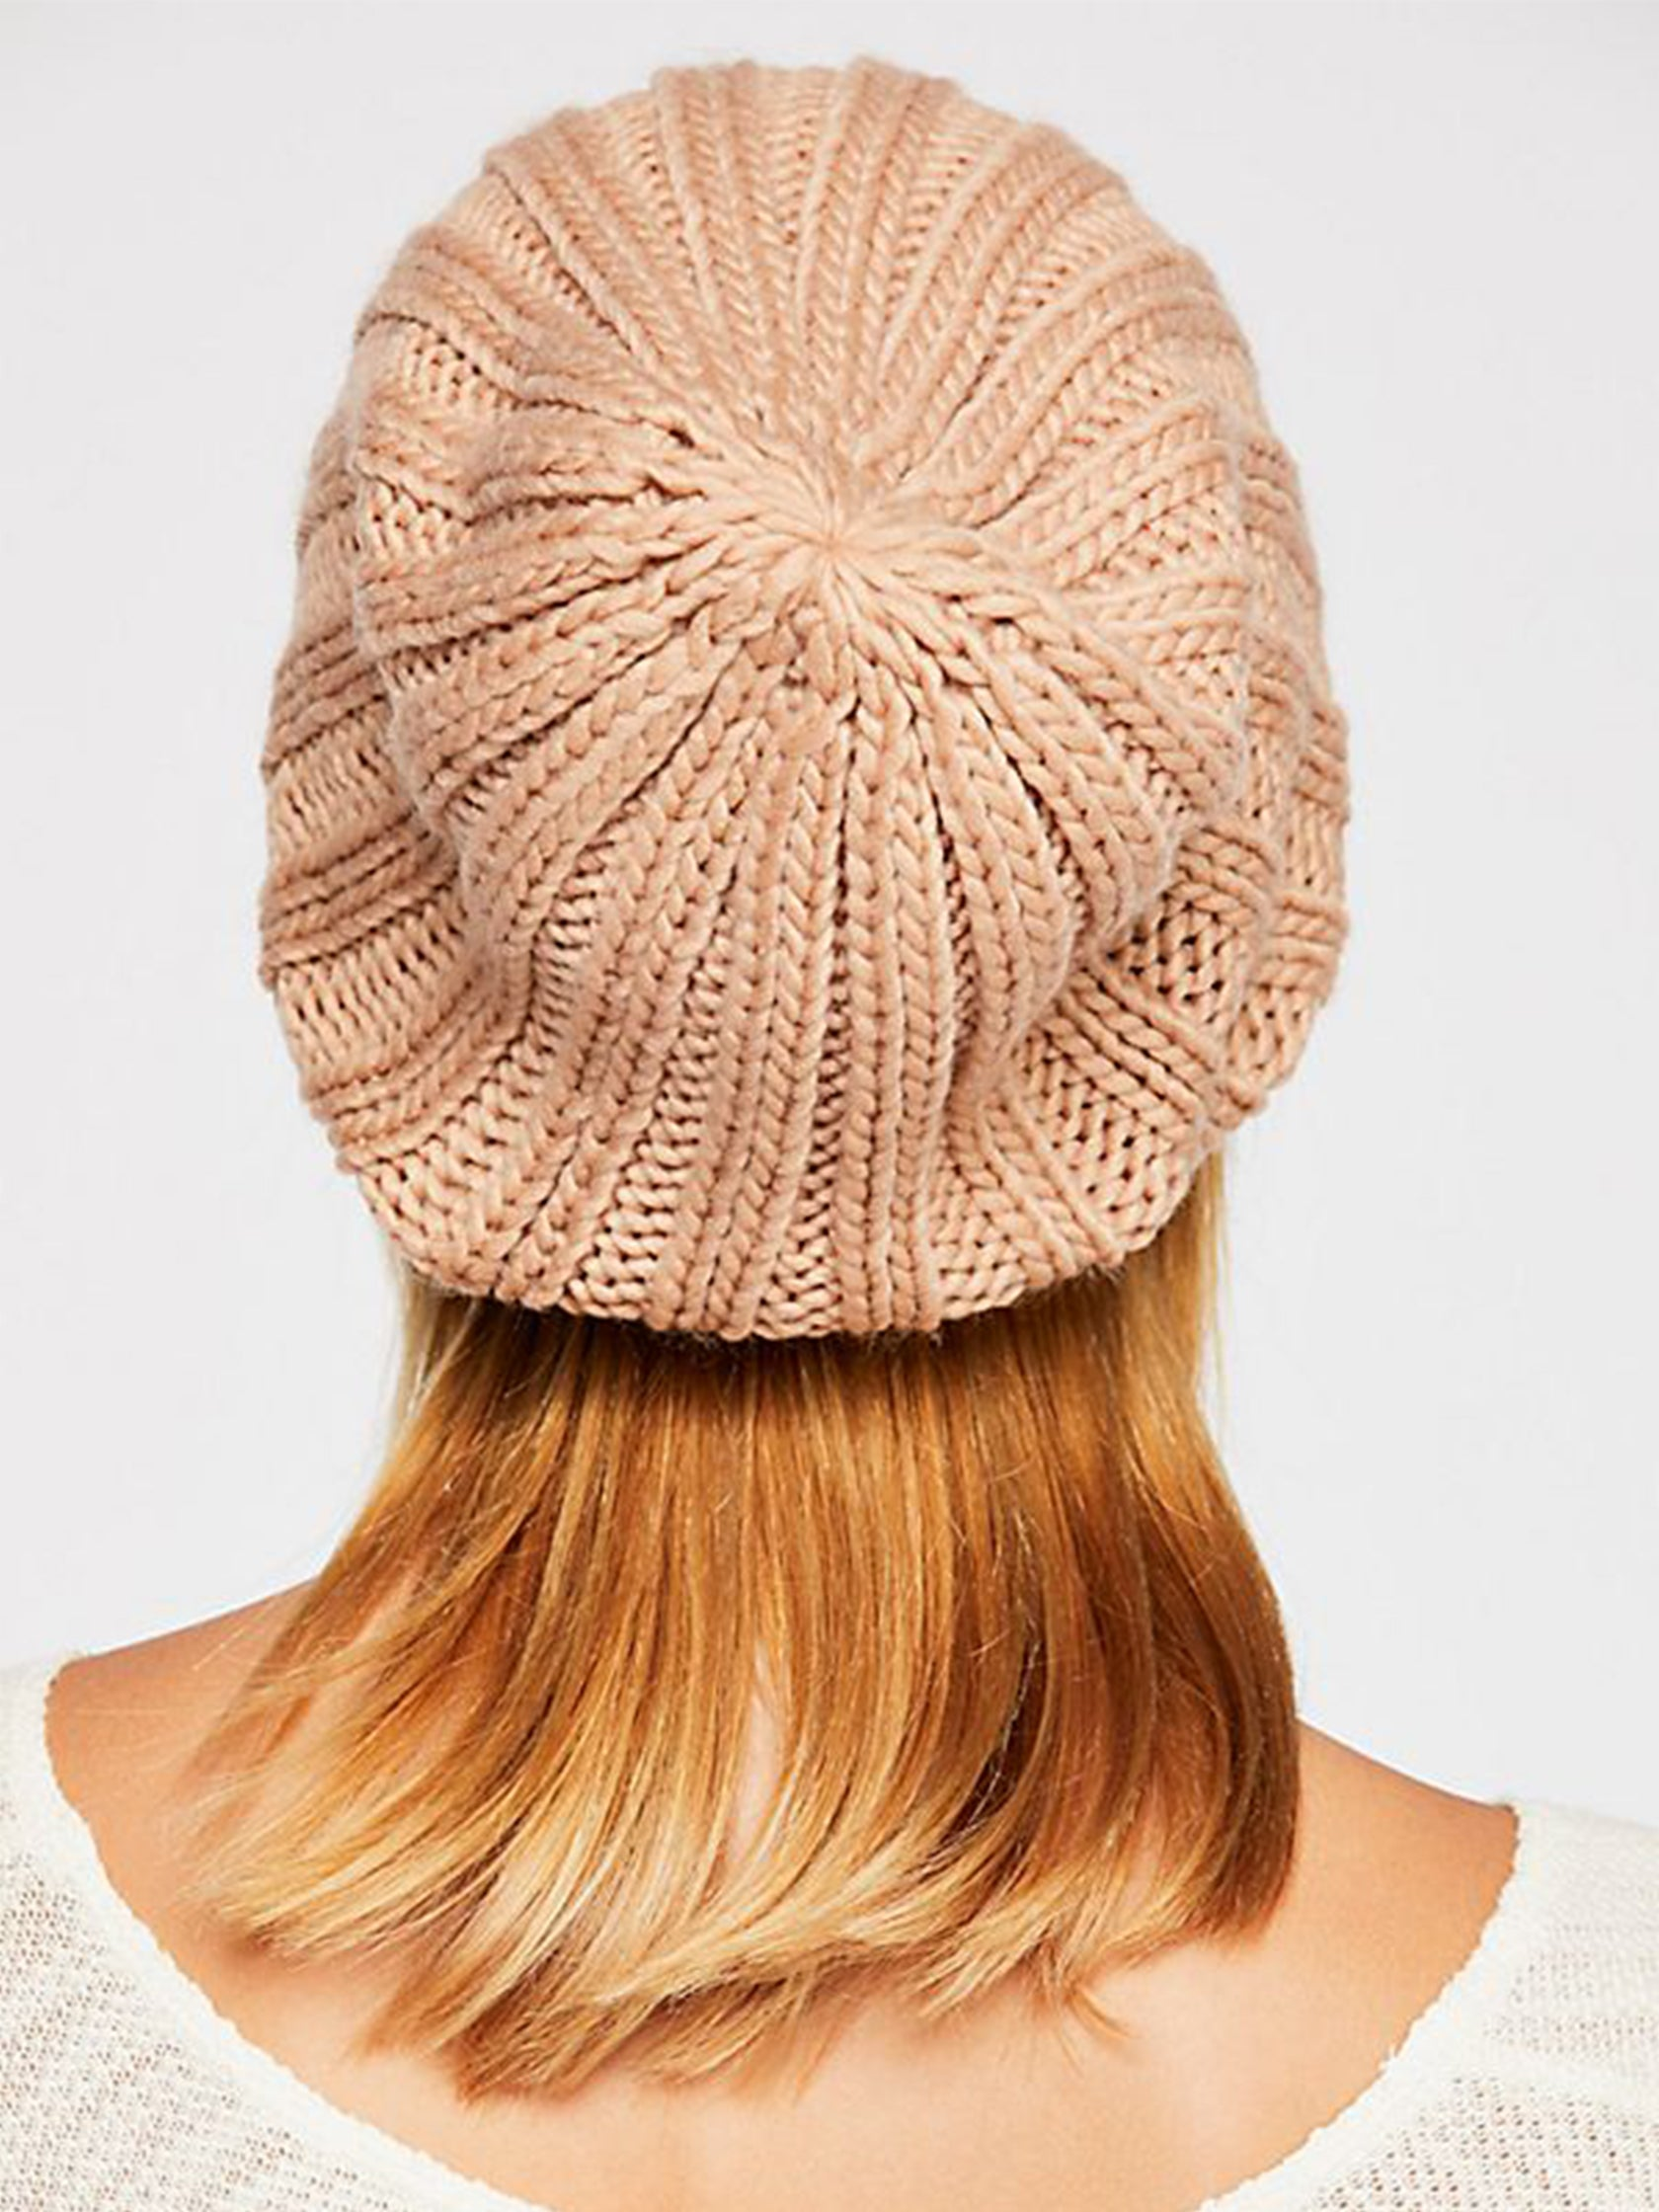 5c097e3ef9609 Women wearing a hat rental from Free People called Rory Rib Knit Beanie